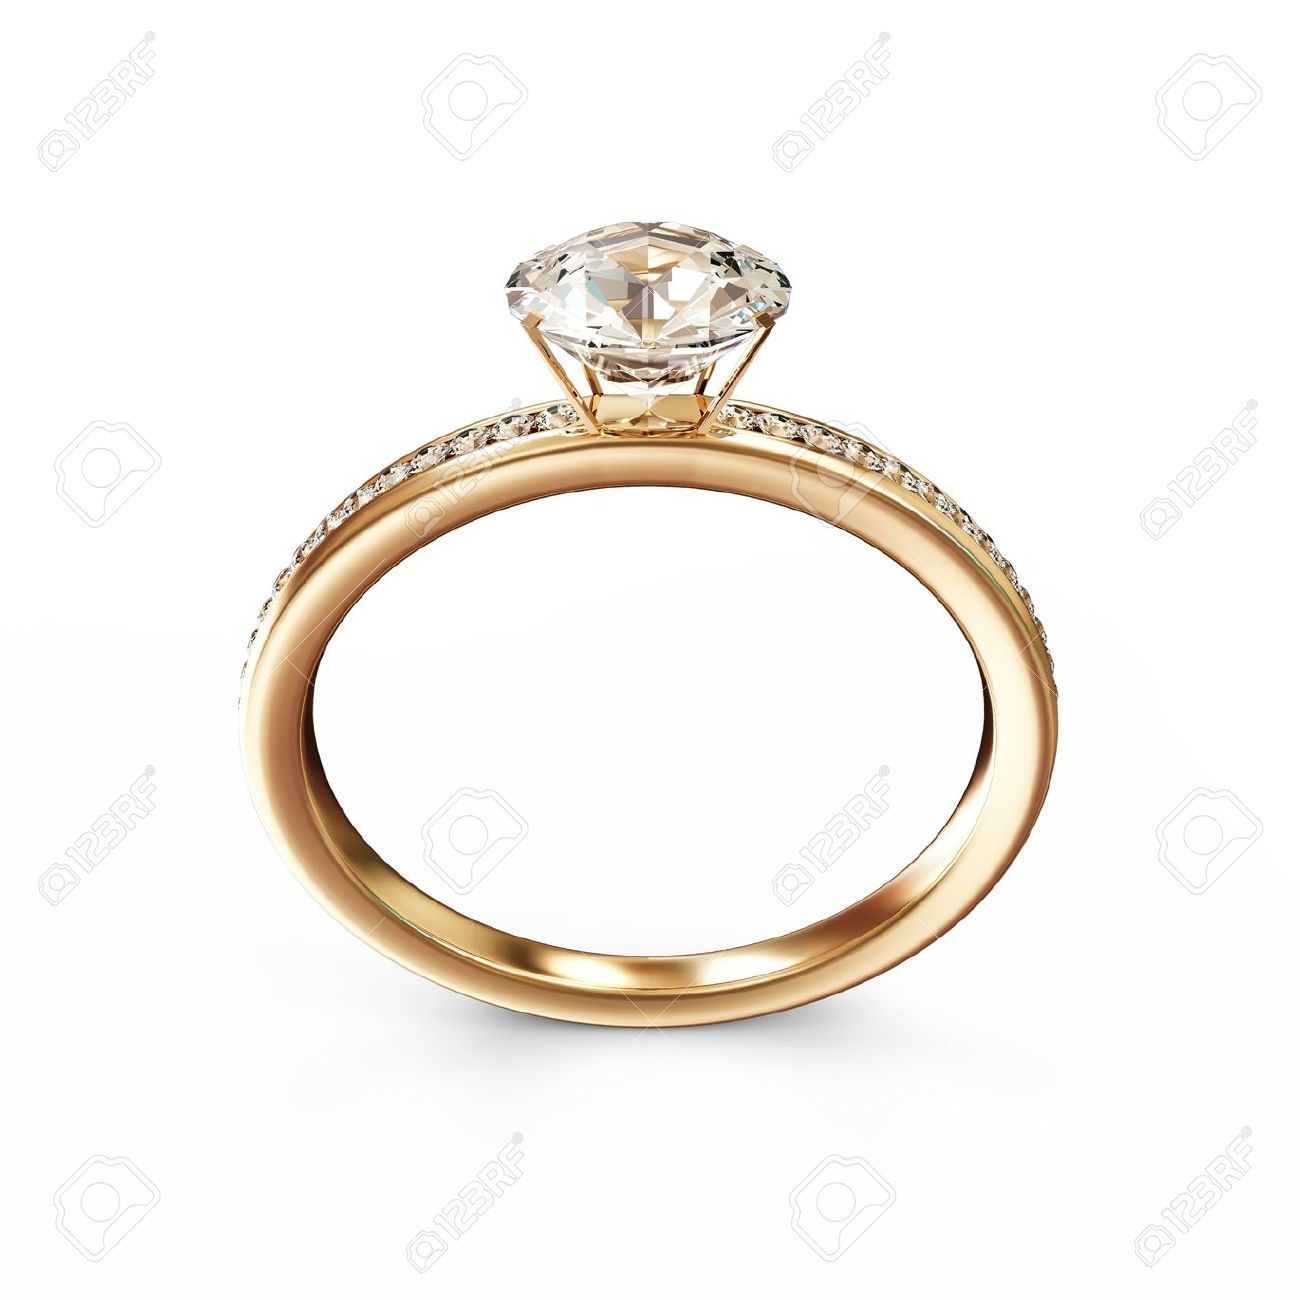 Golden Wedding Ring With Diamonds Isolated On White Background Stock